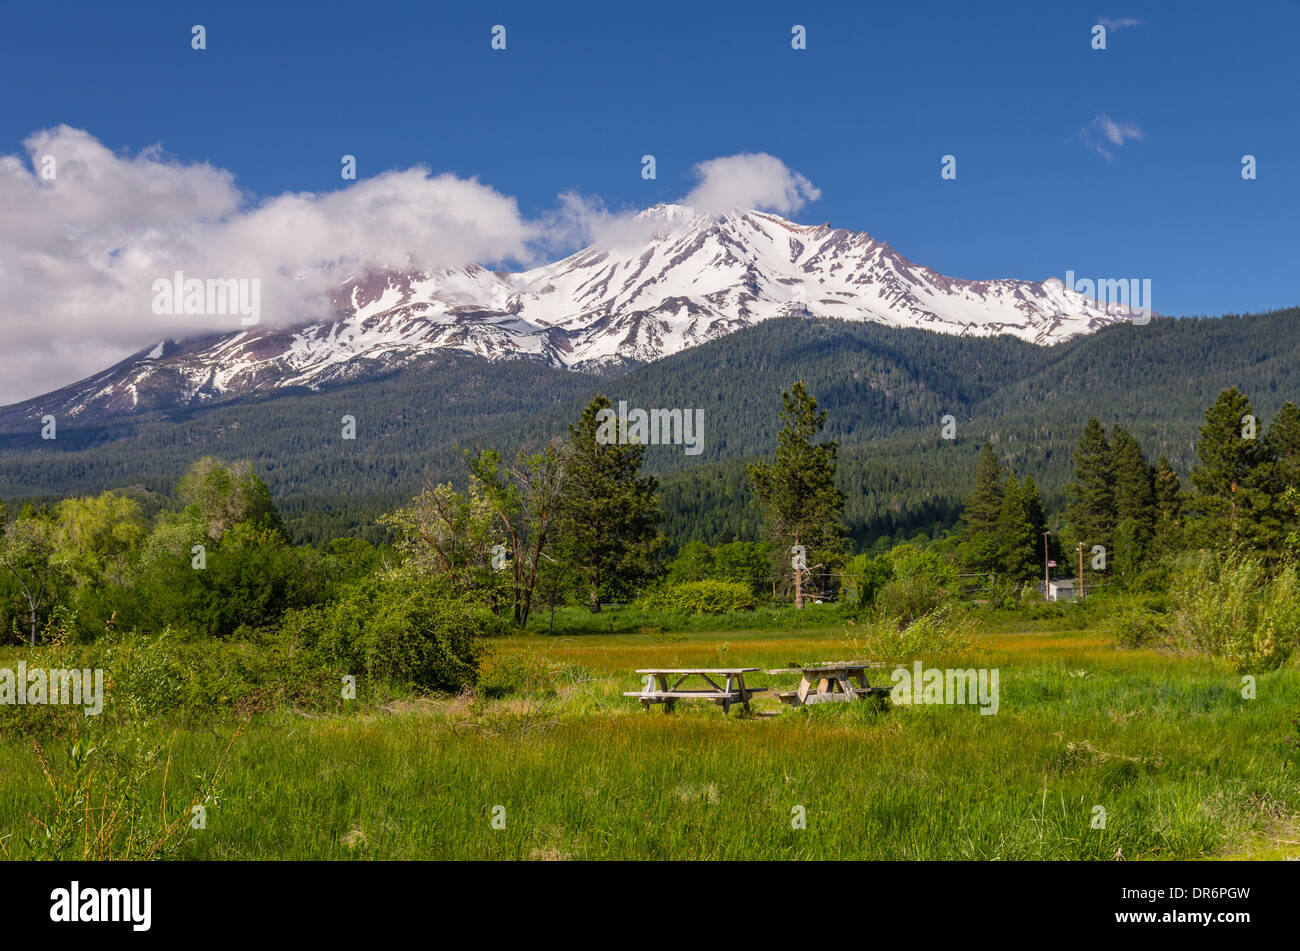 View of Mt Shasta showing picnic tables in a park.  Mount Shasta, California - Stock Image